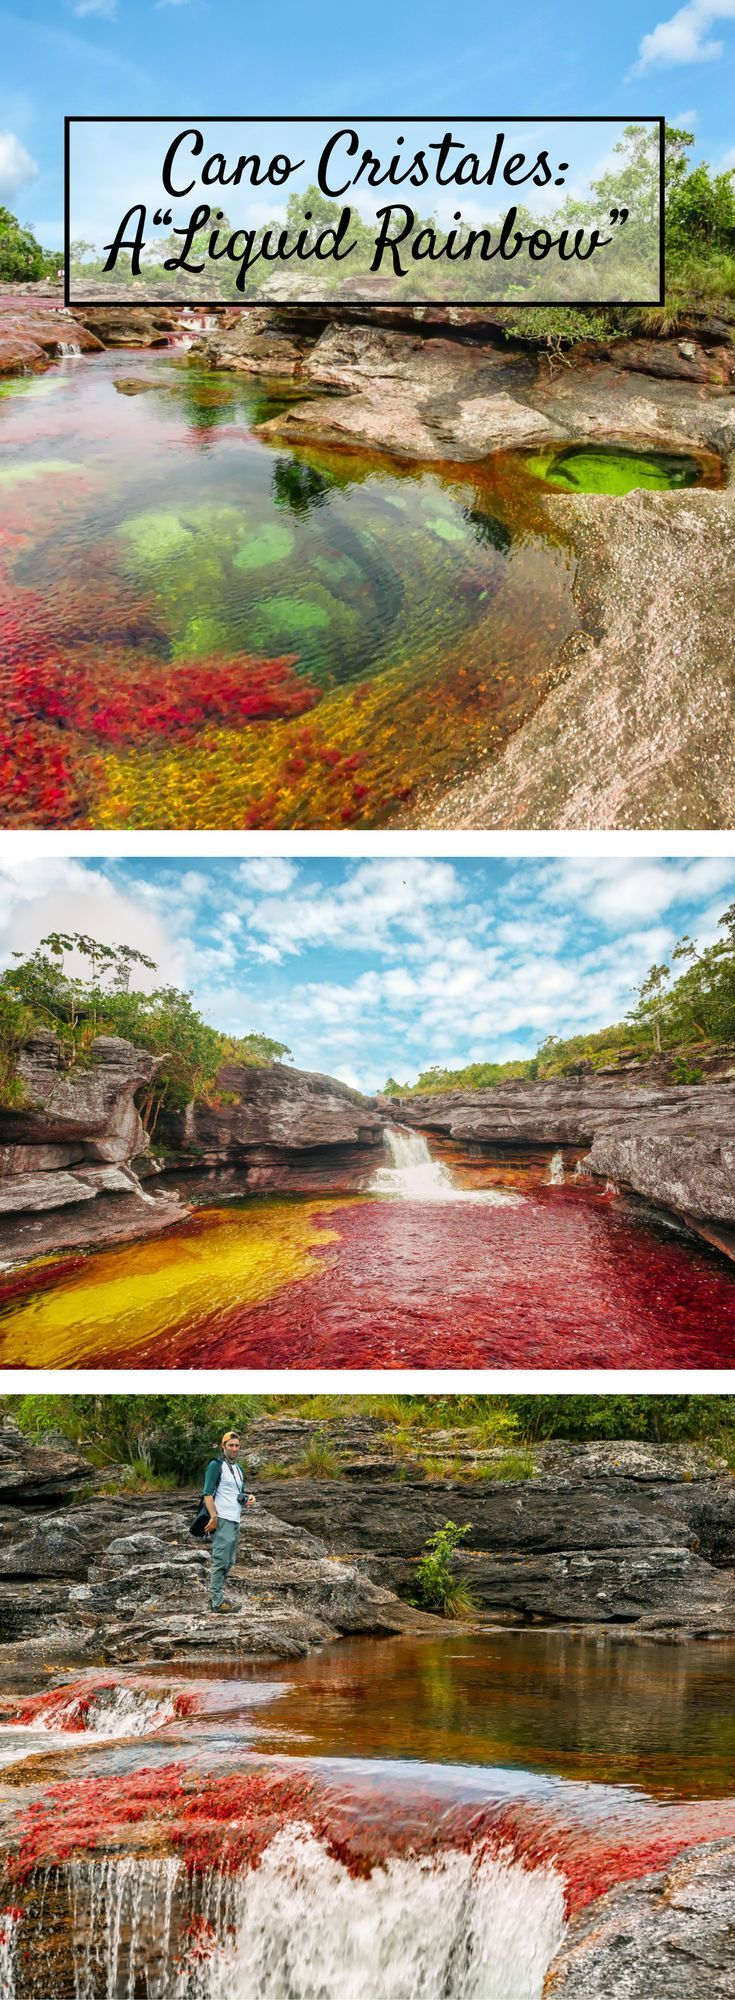 "Here's why the Caño Cristales is called a ""Liquid Rainbow"""